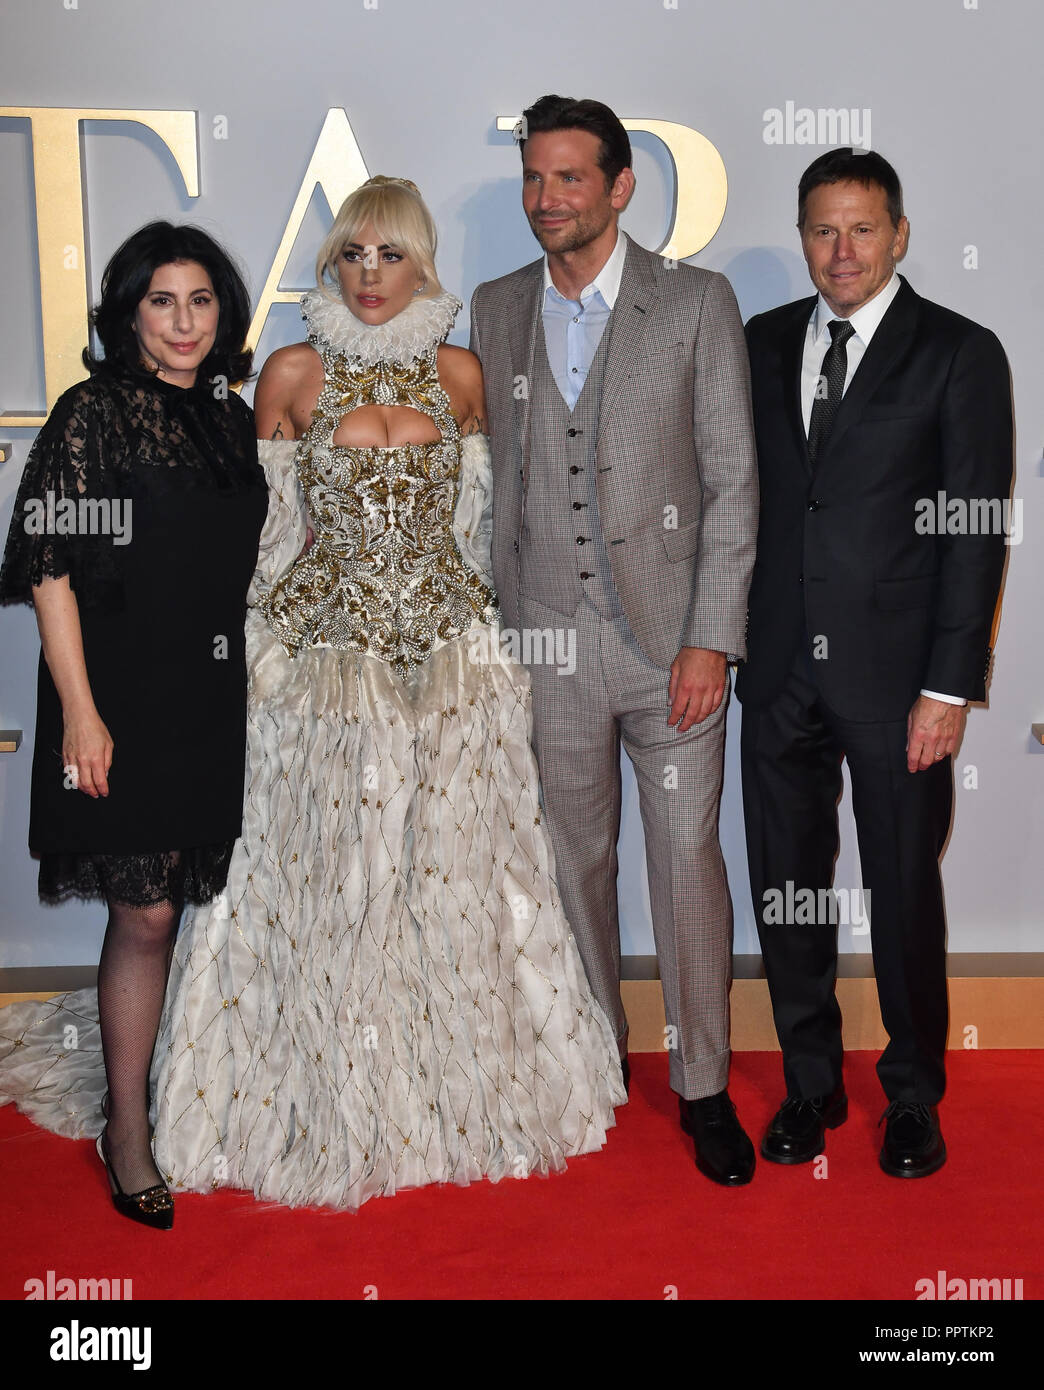 London, UK. 27th September 2018. Lady Gaga ,Bradley Cooper and cast crew  attend A Star Is Born UK Premiere at Vue Cinemas, Leicester Square, London,  UK 27 September 2018. Credit: Picture Capital/Alamy